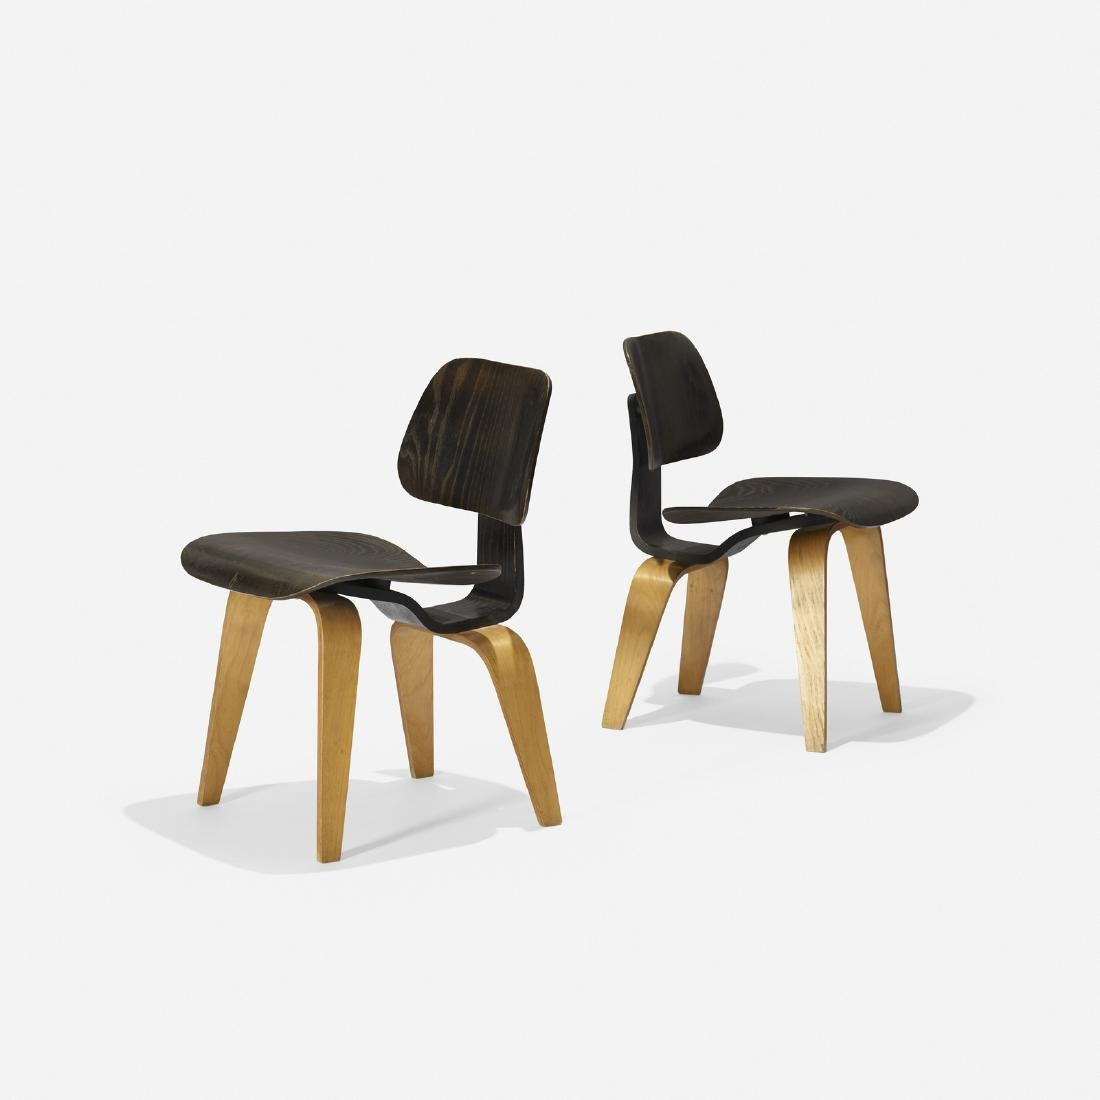 Charles and Ray Eames, DCWs, pair